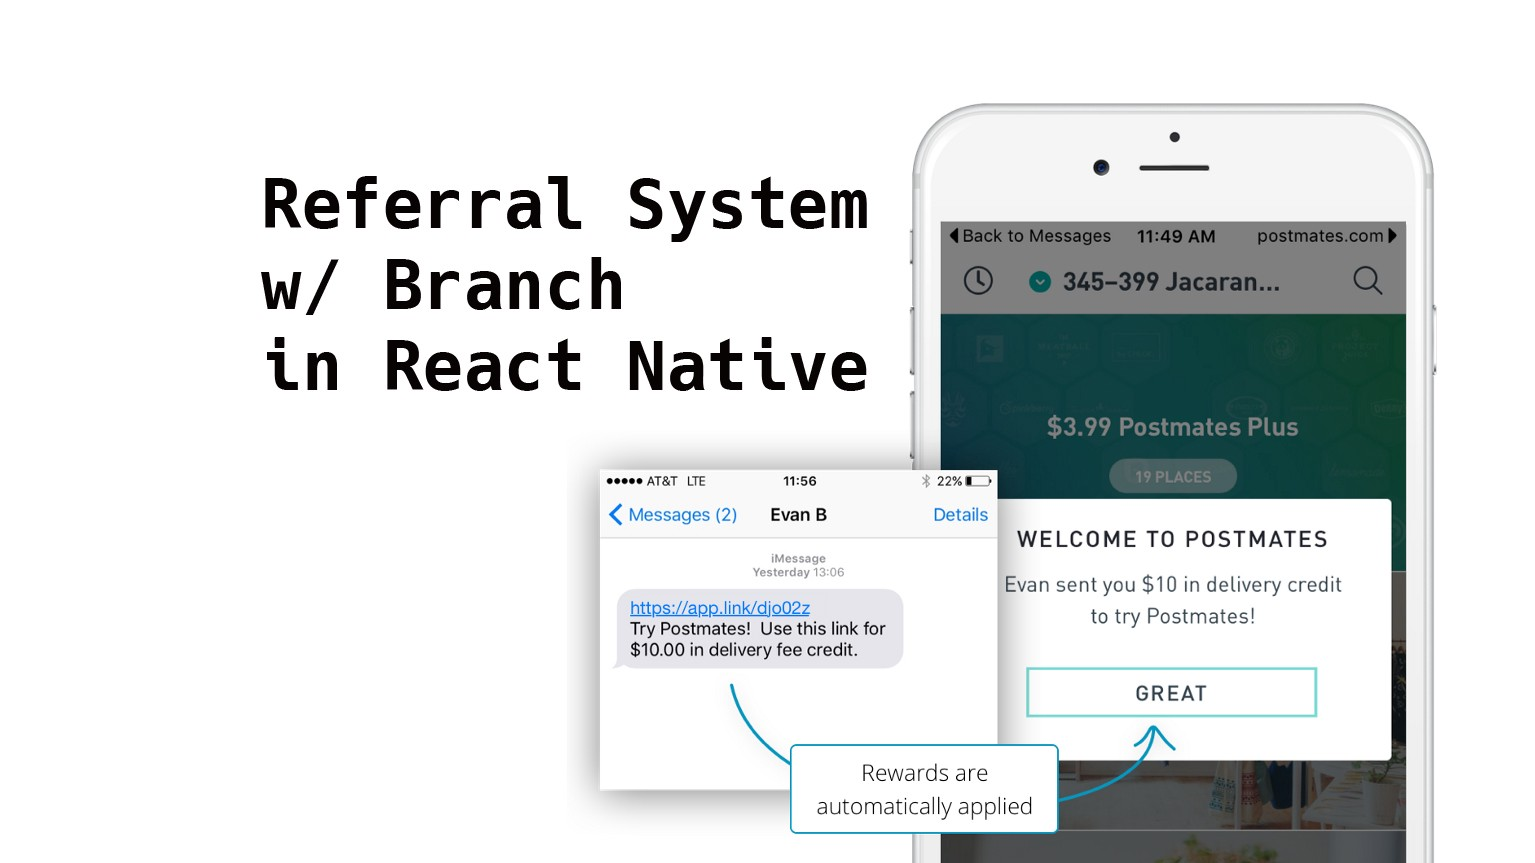 Creating a Referral System Using Branch in React Native